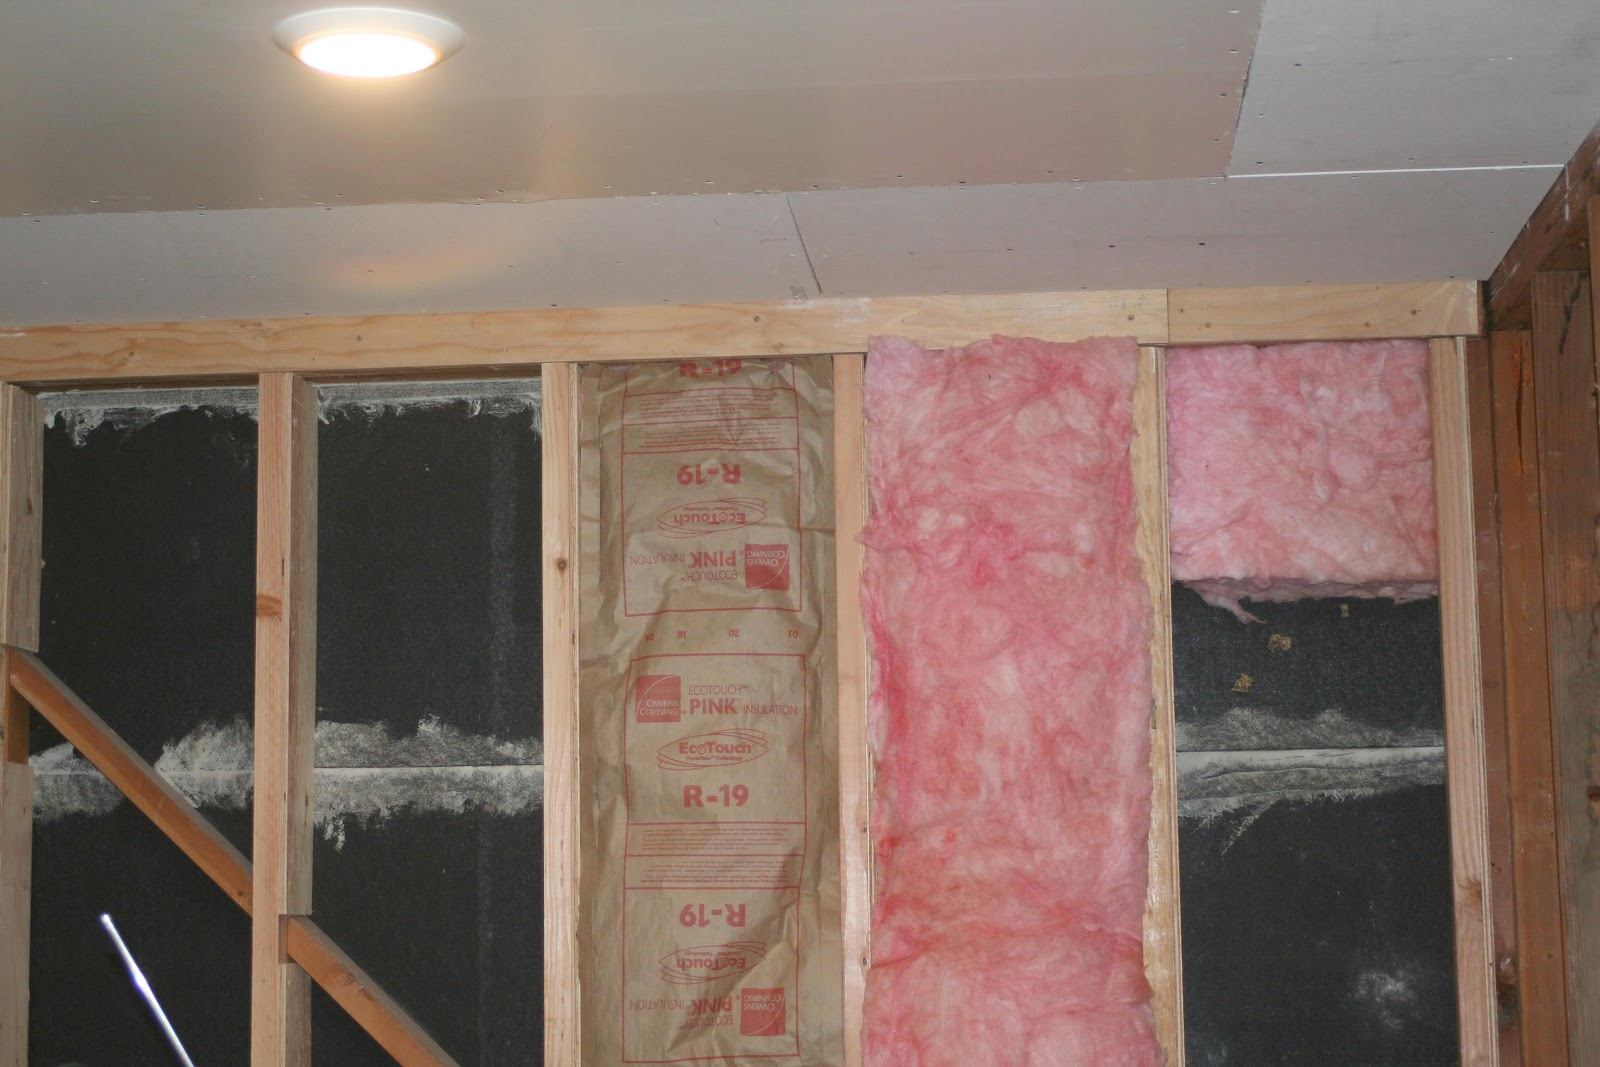 Energy Conservation How To 2x4 Framing Build Out To 2x6